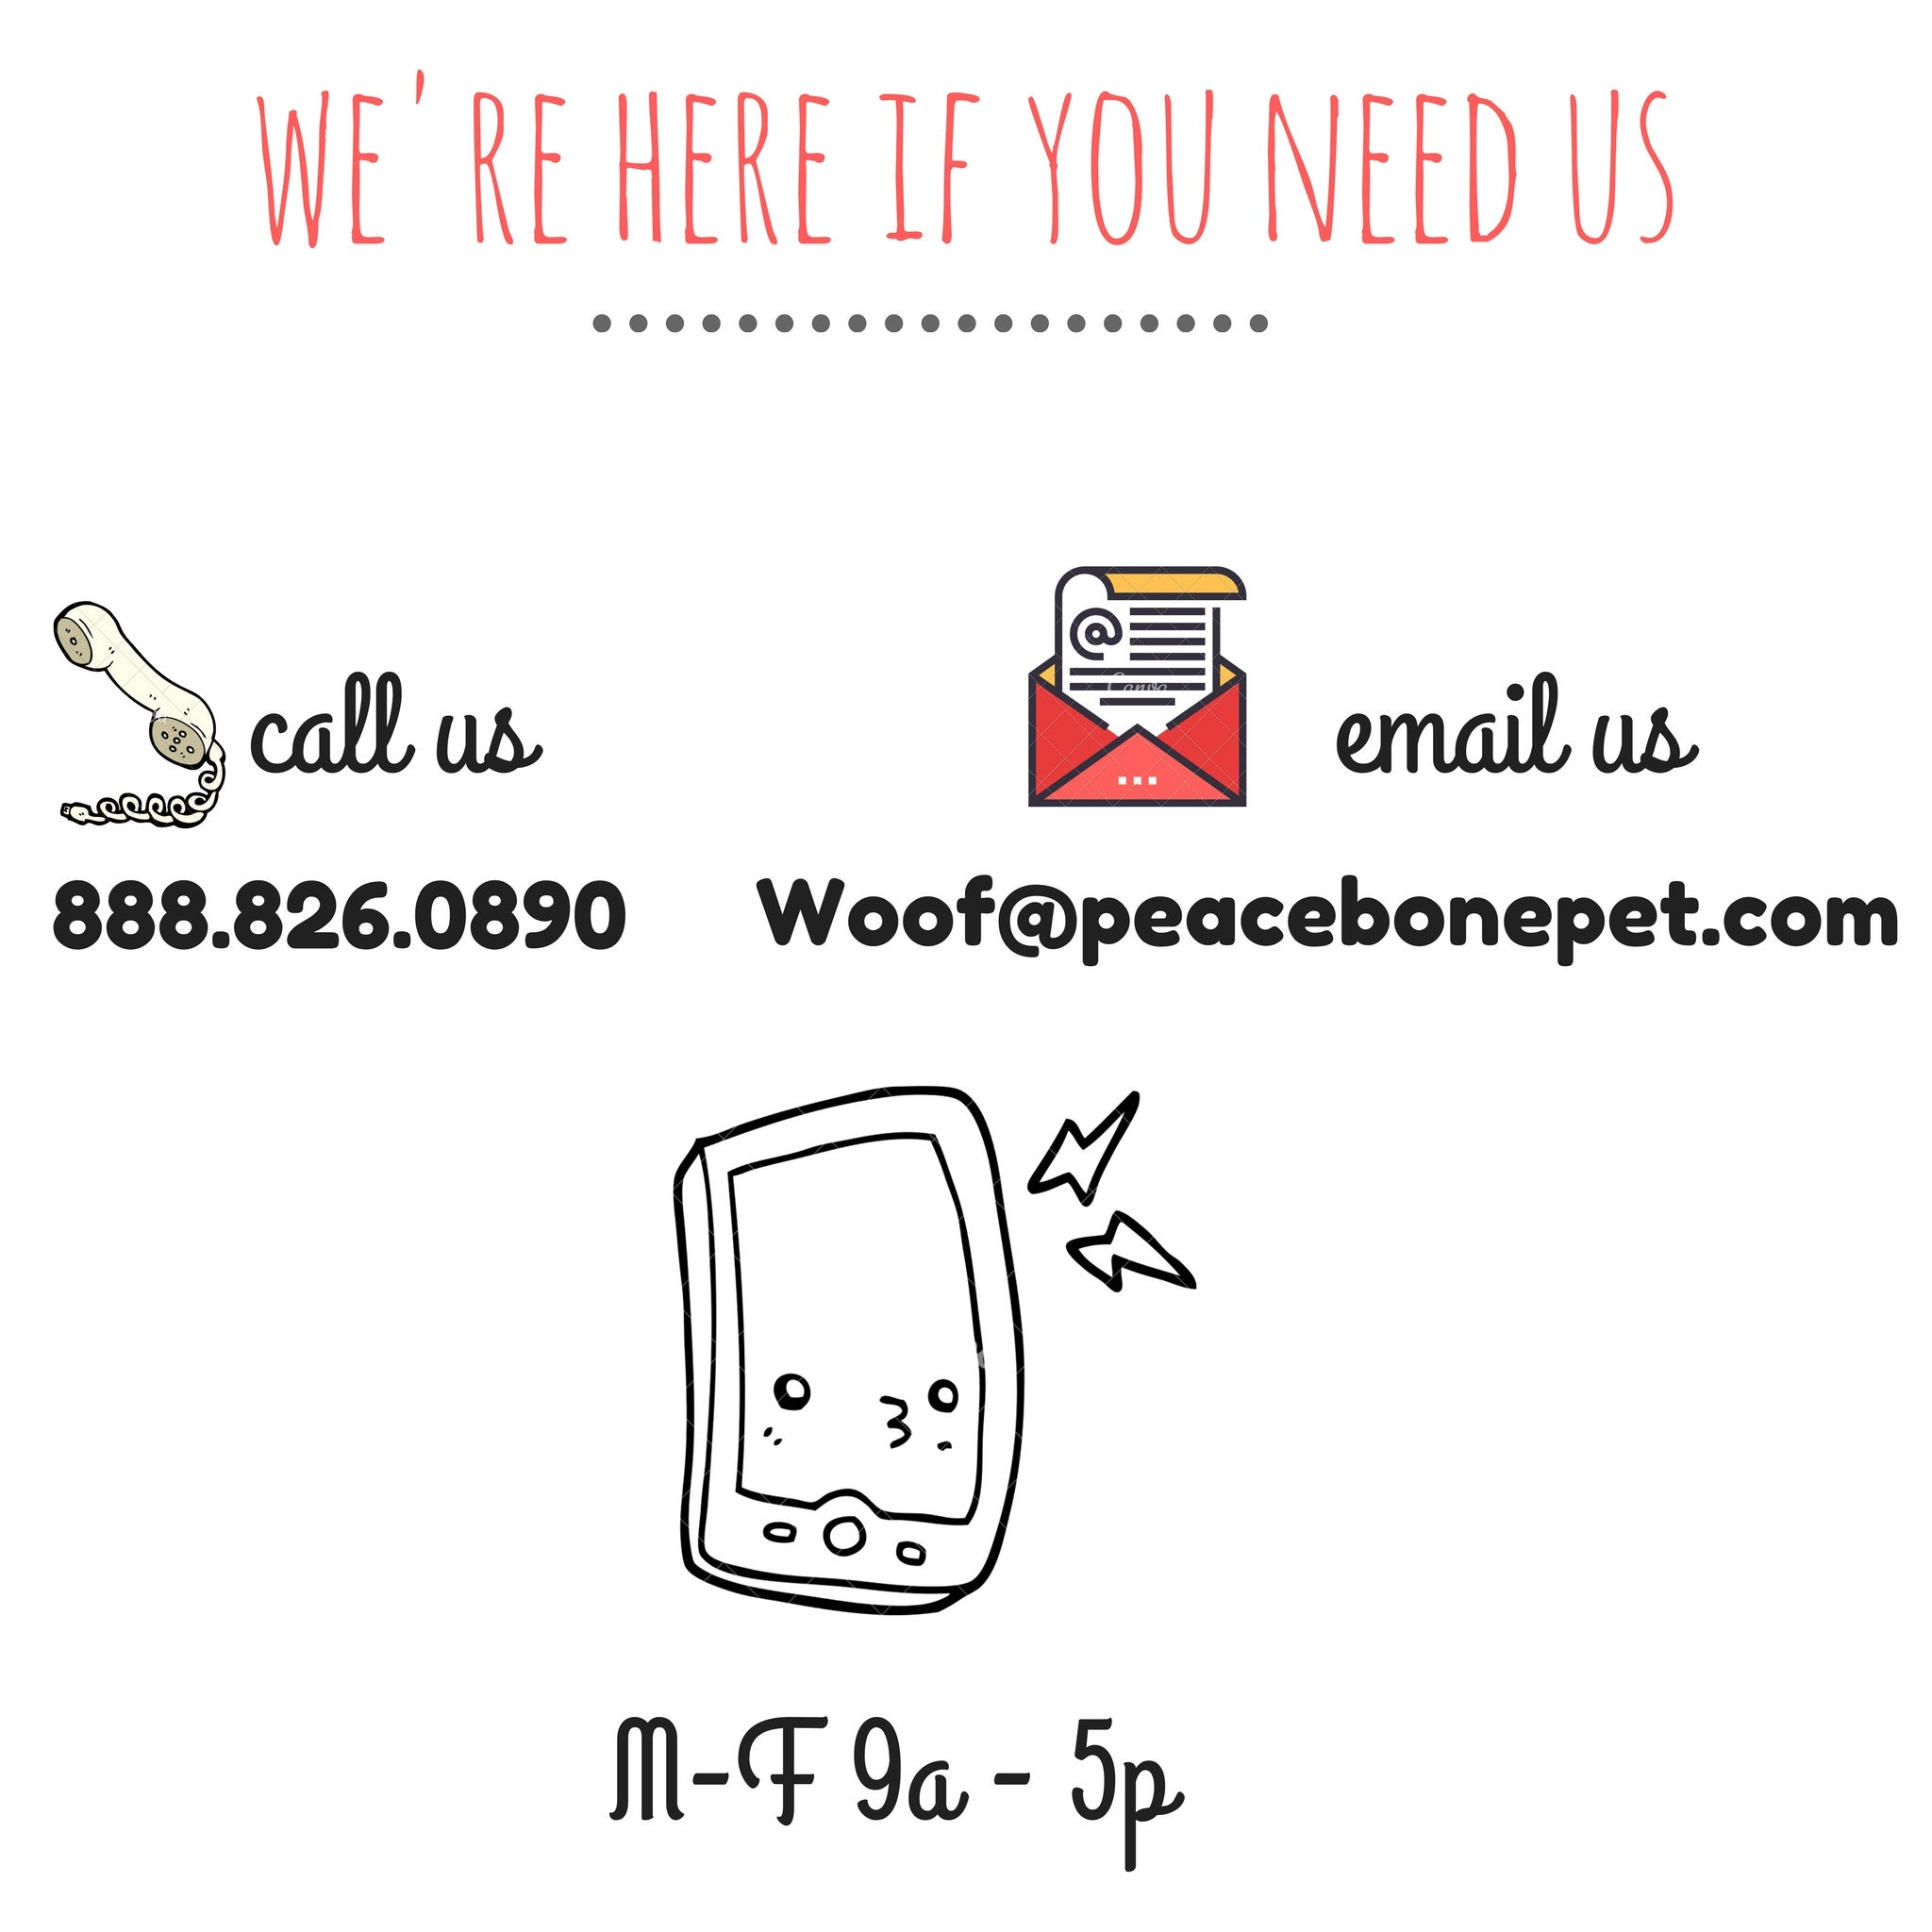 Talk to us | Peacebonepet.com